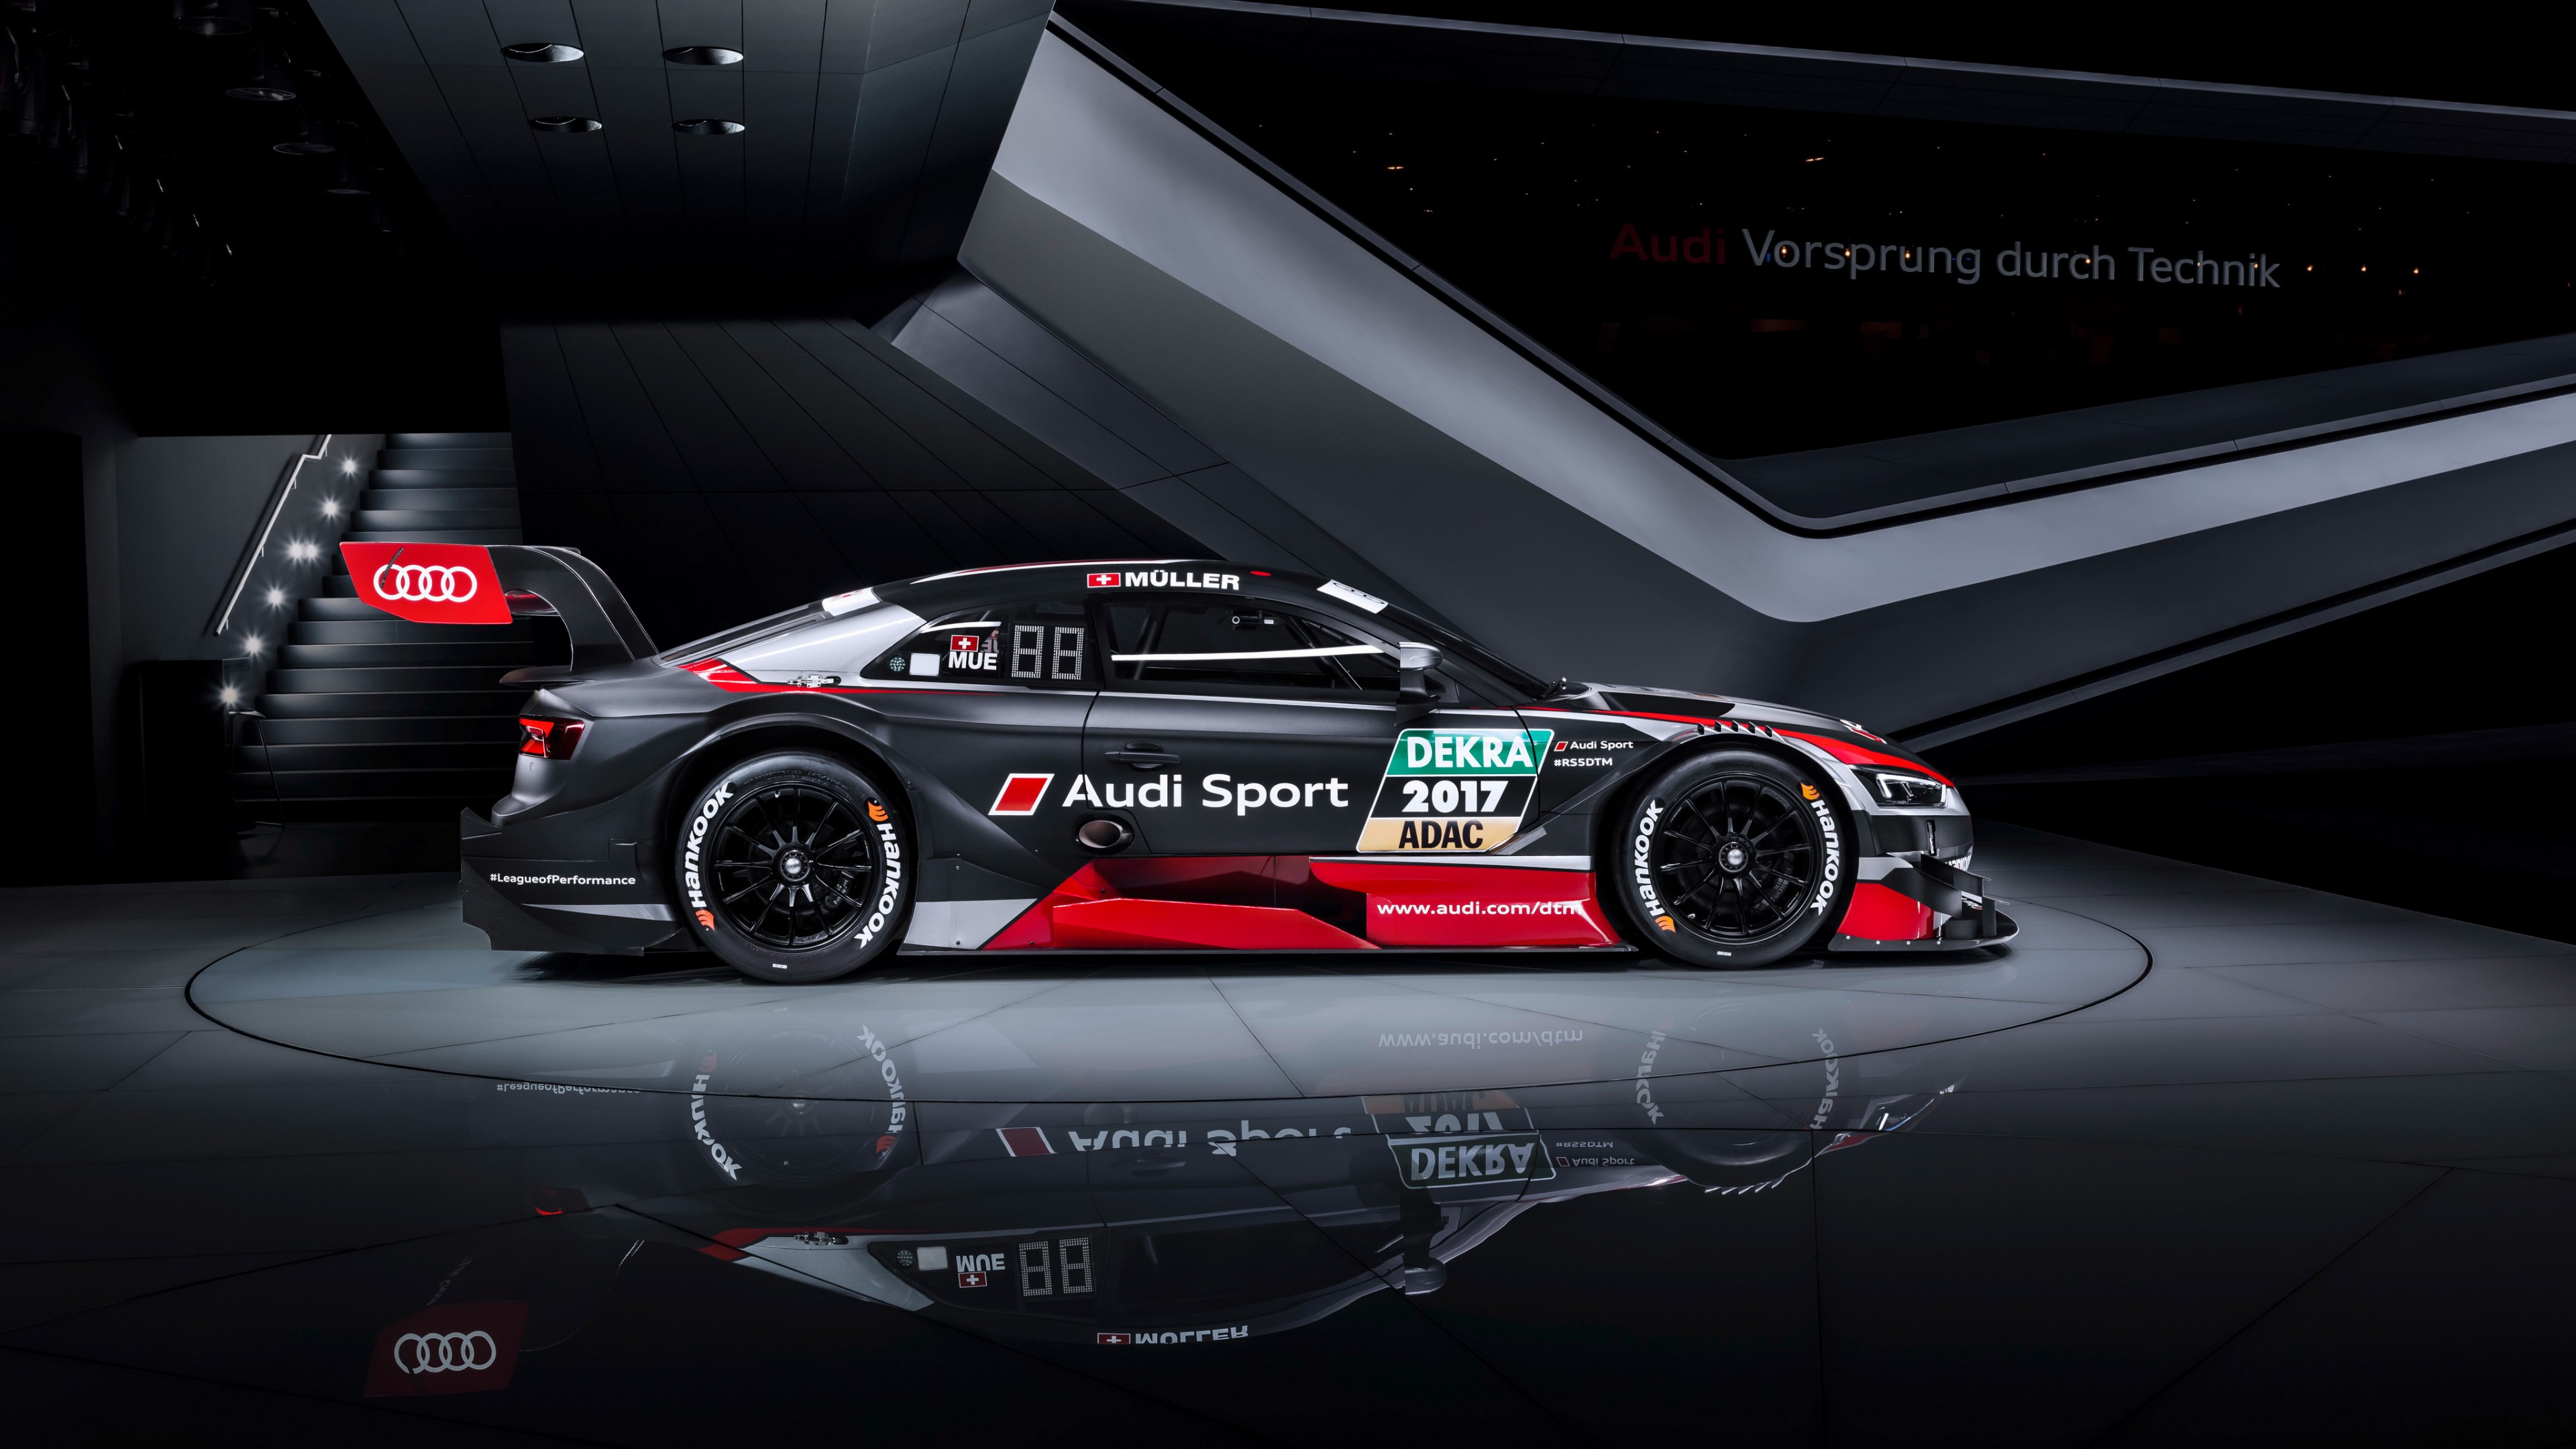 2018 Audi RS 5 Coupe DTM 4K Wallpaper | HD Car Wallpapers | ID #7647